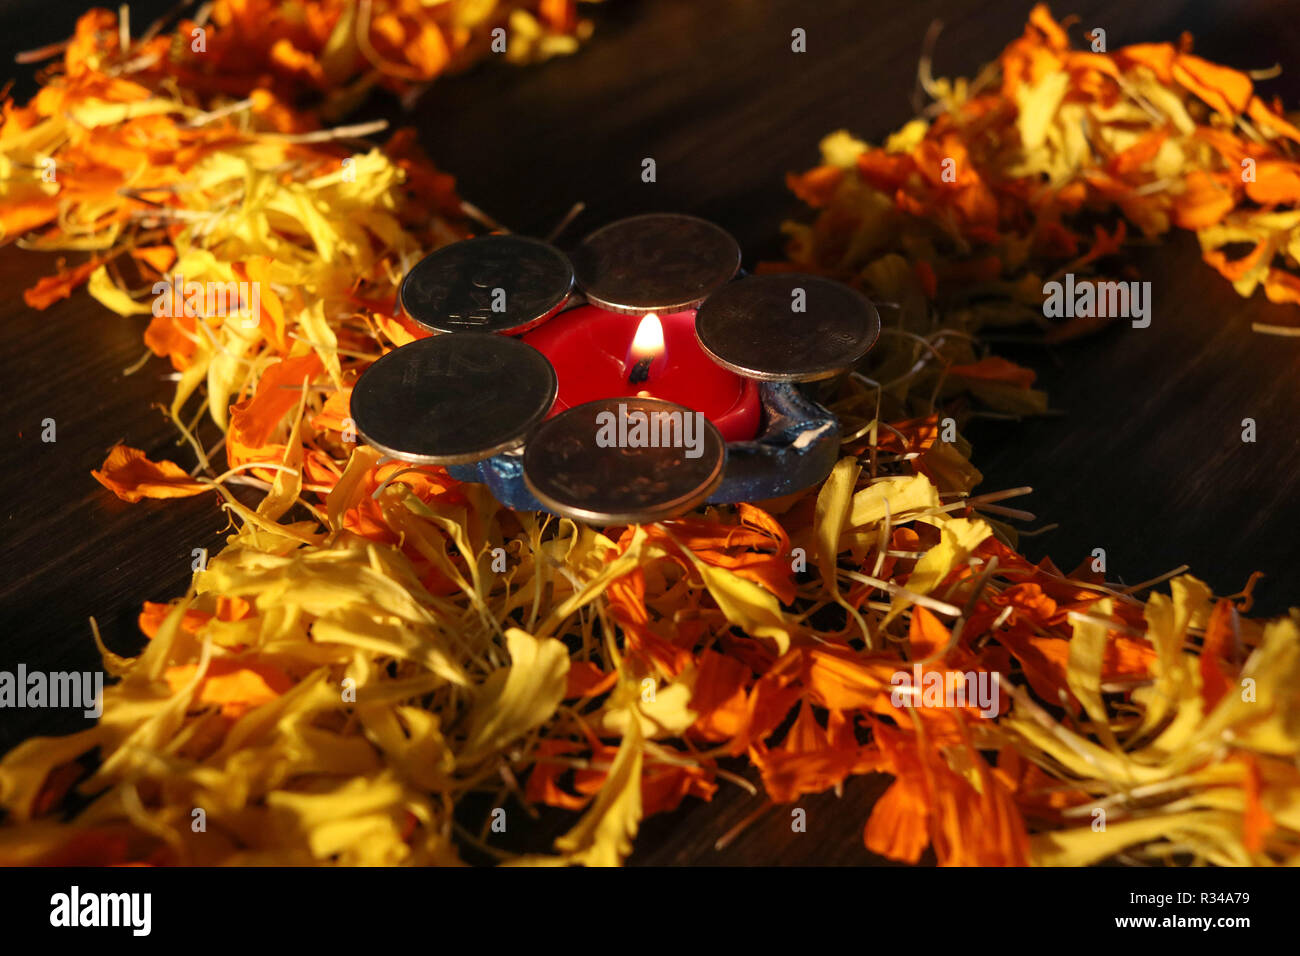 Lit diya placed on flower with coins for celebrating diwali and dhanteras festival in India Stock Photo